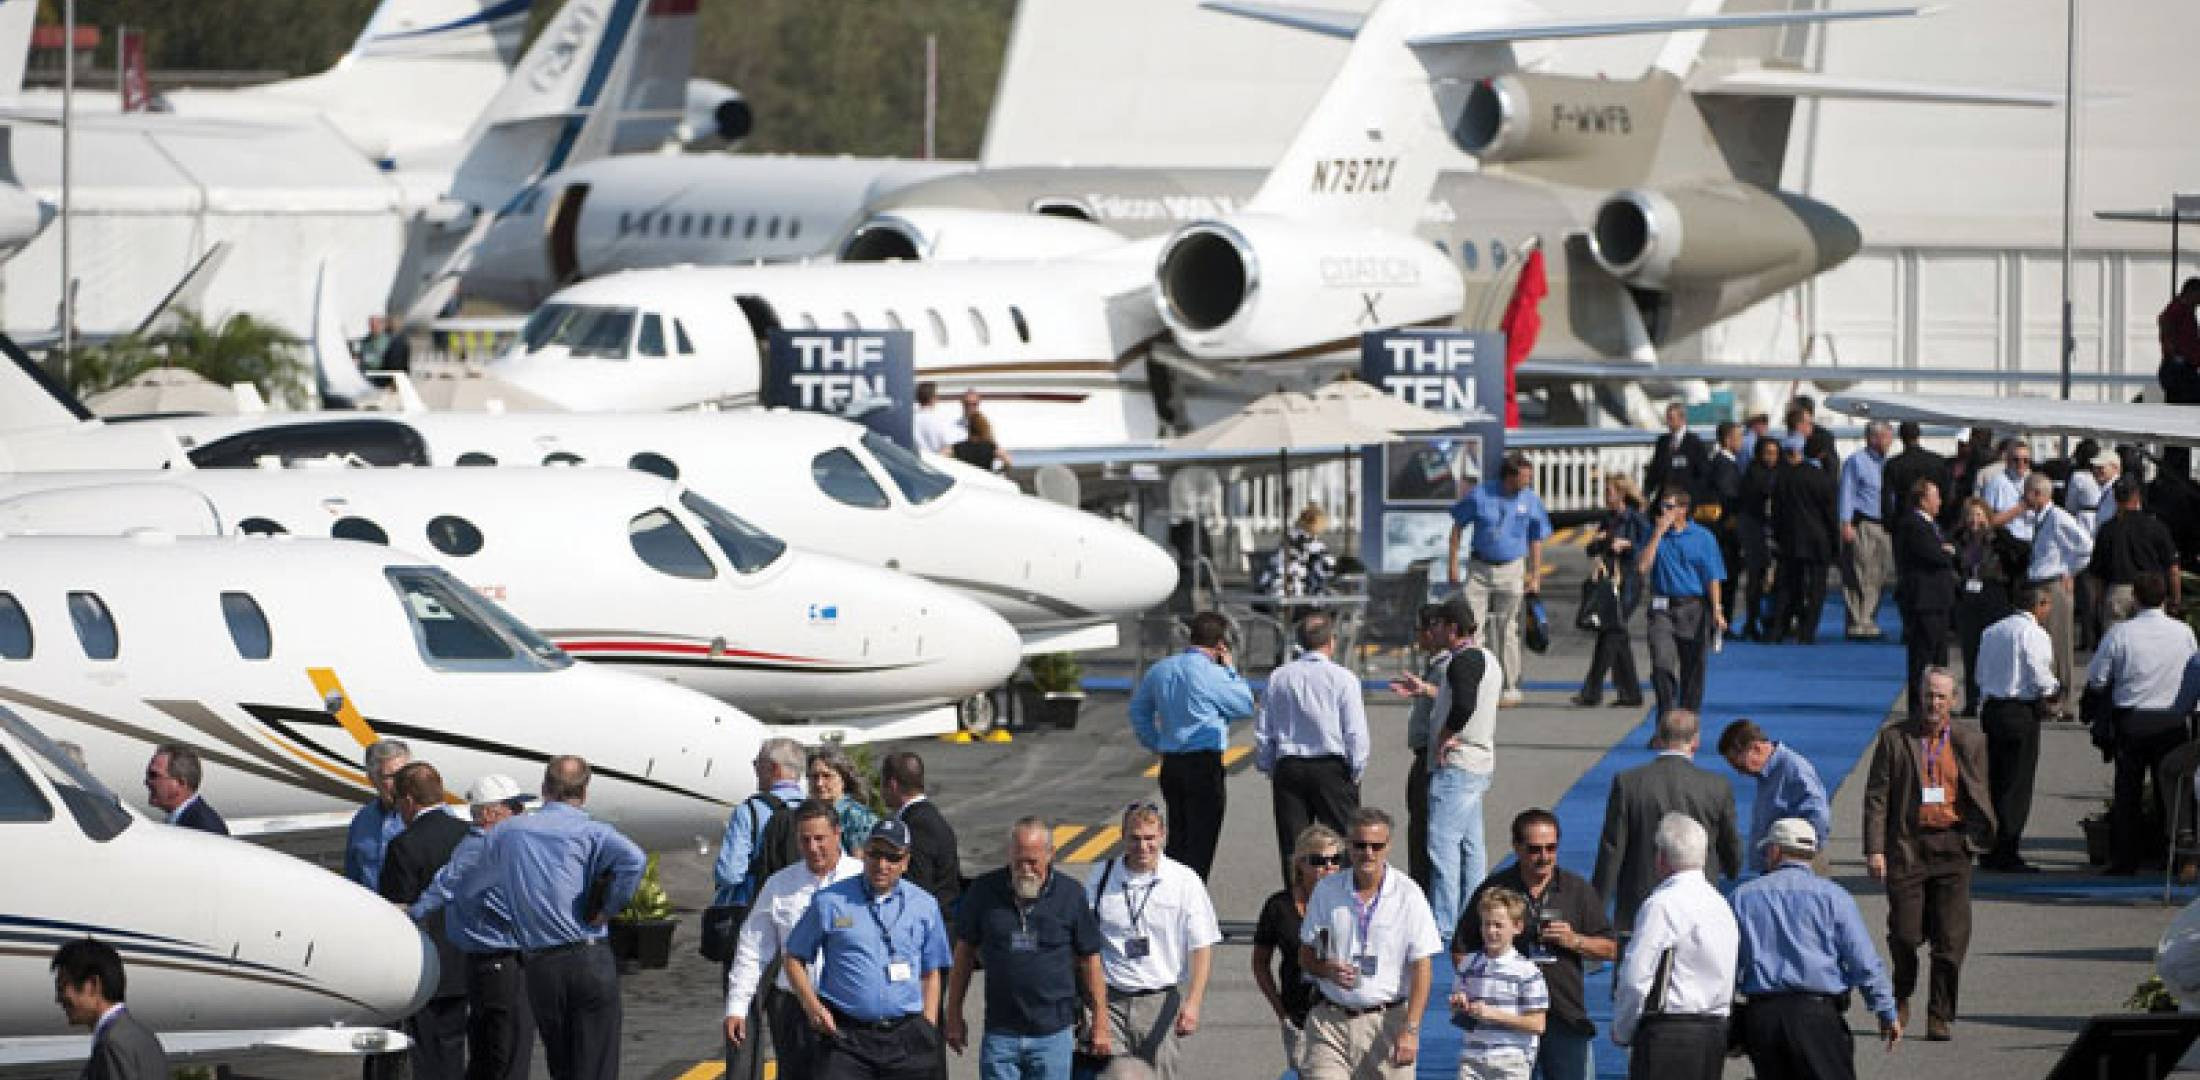 NBAA 2010 static display